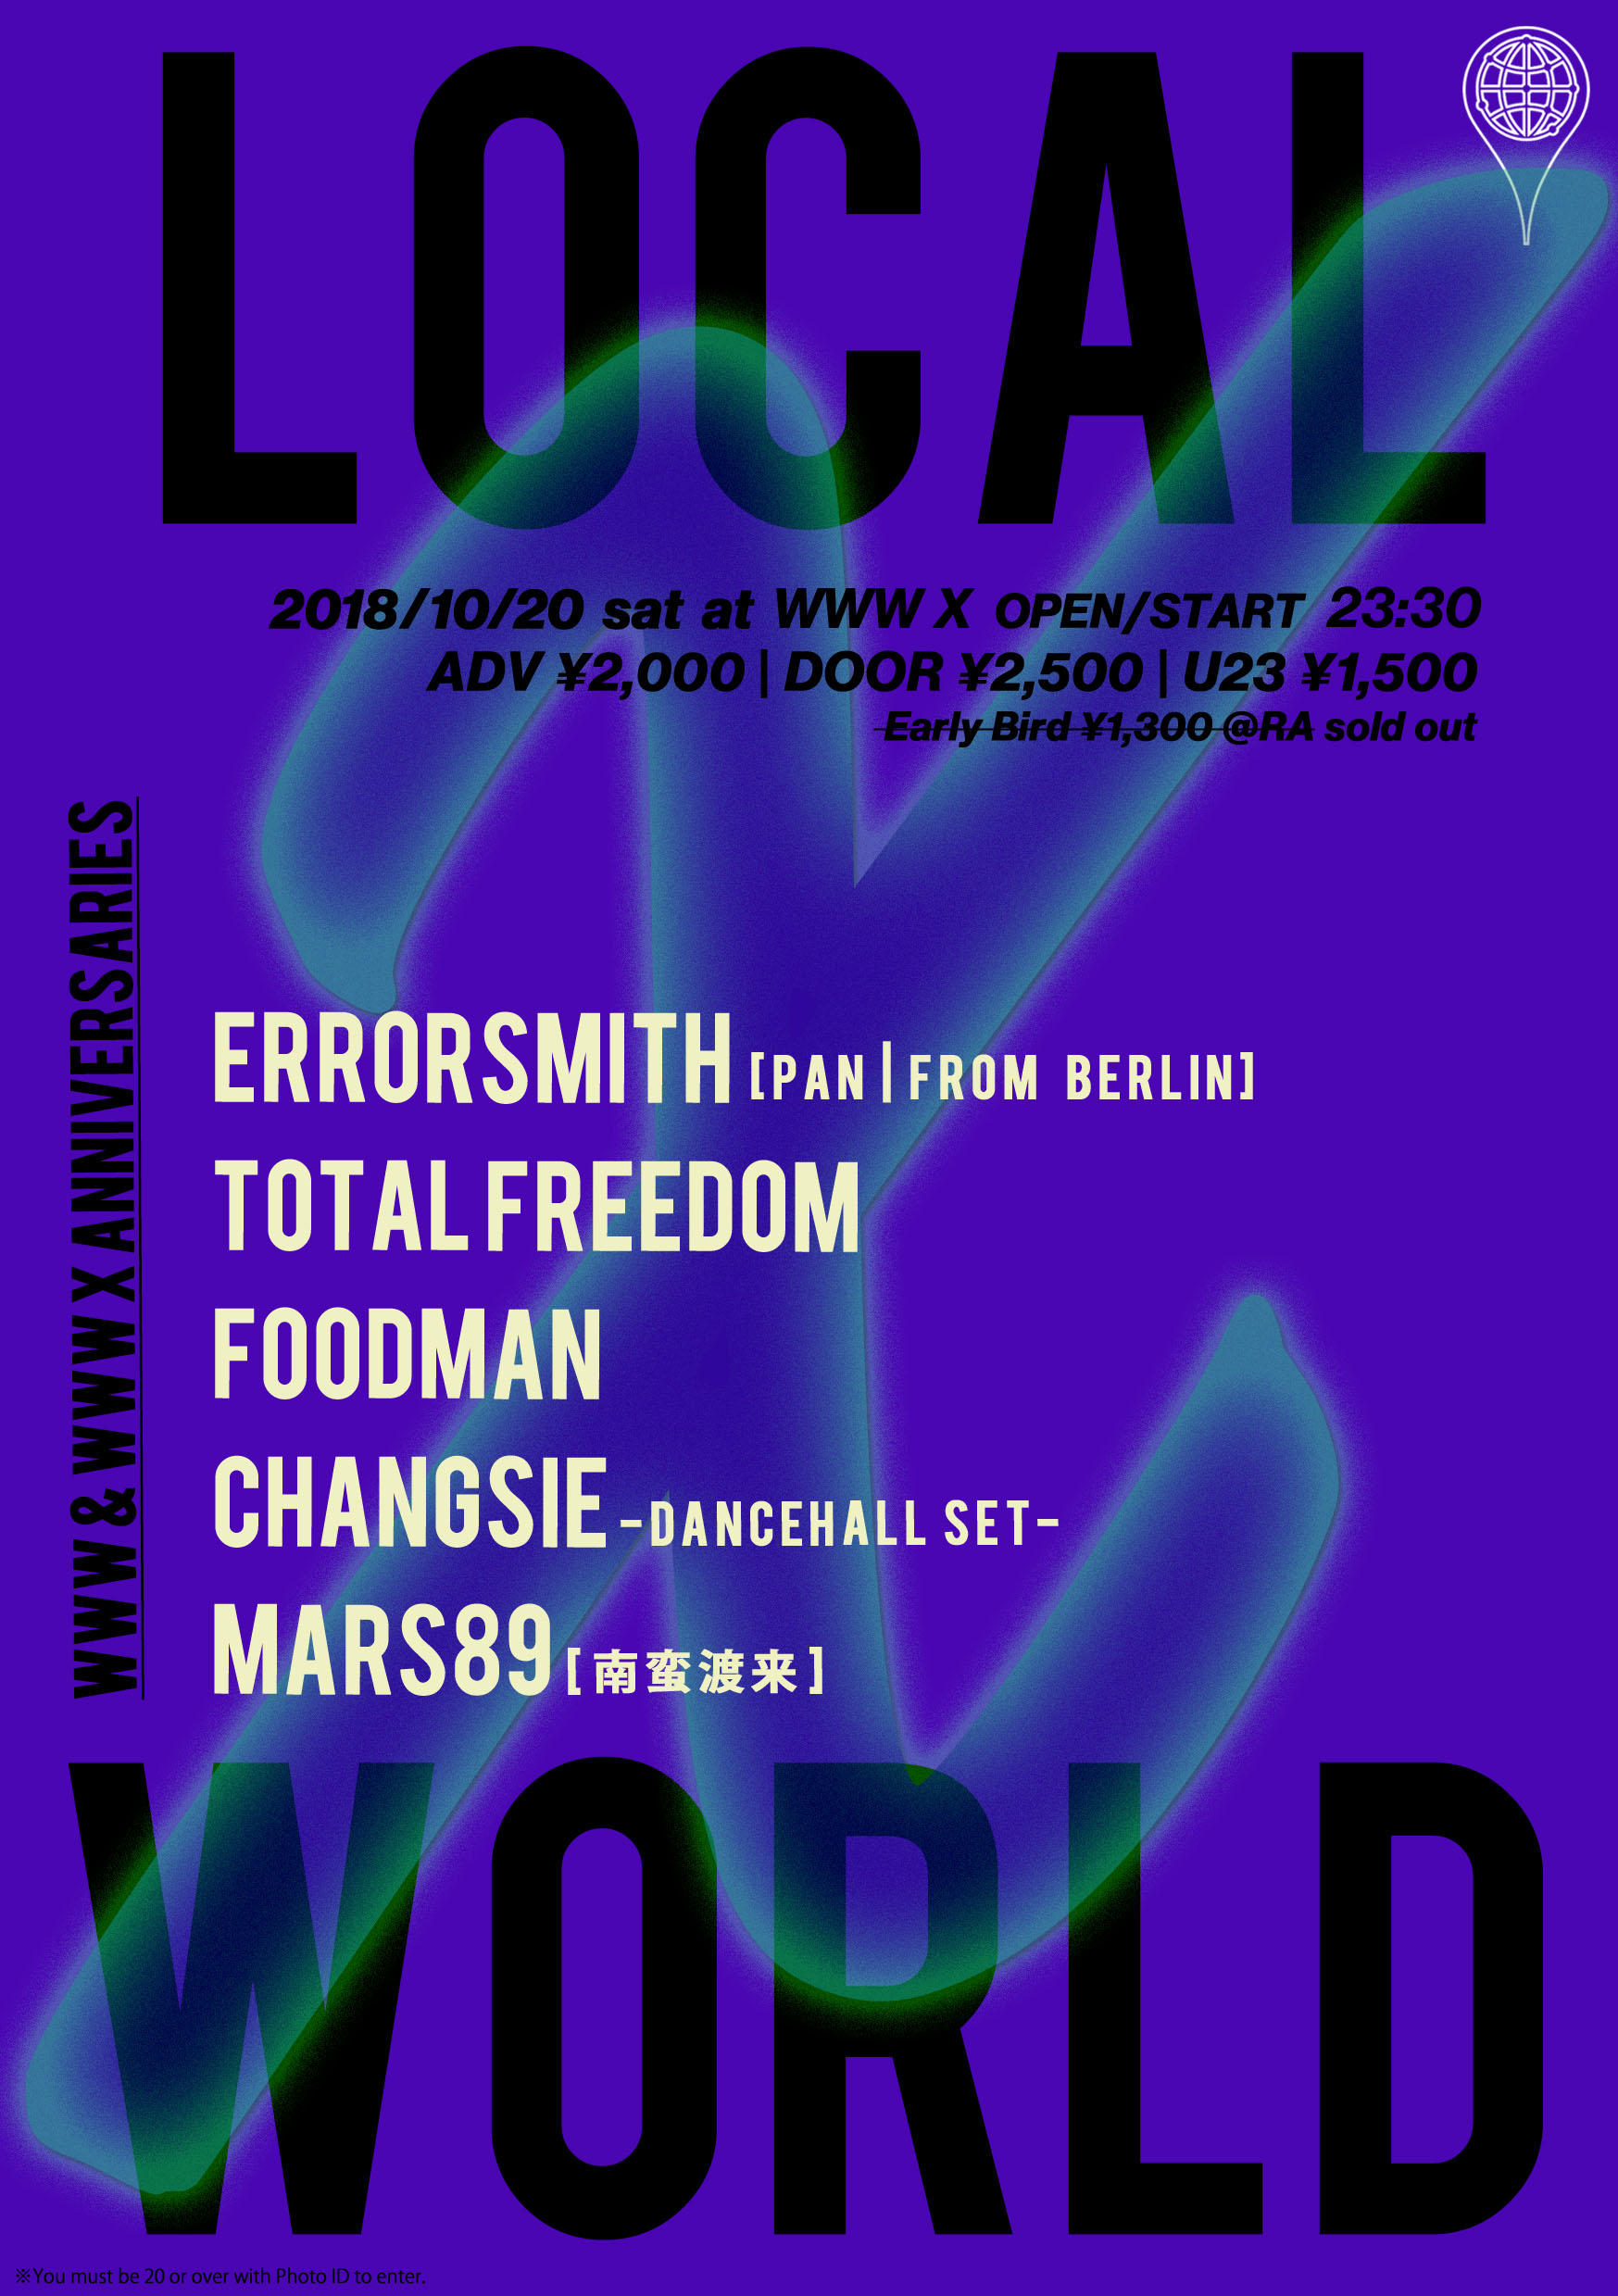 Errorsmith / Total Freedom / Foodman / CHANGSIE / Mars89